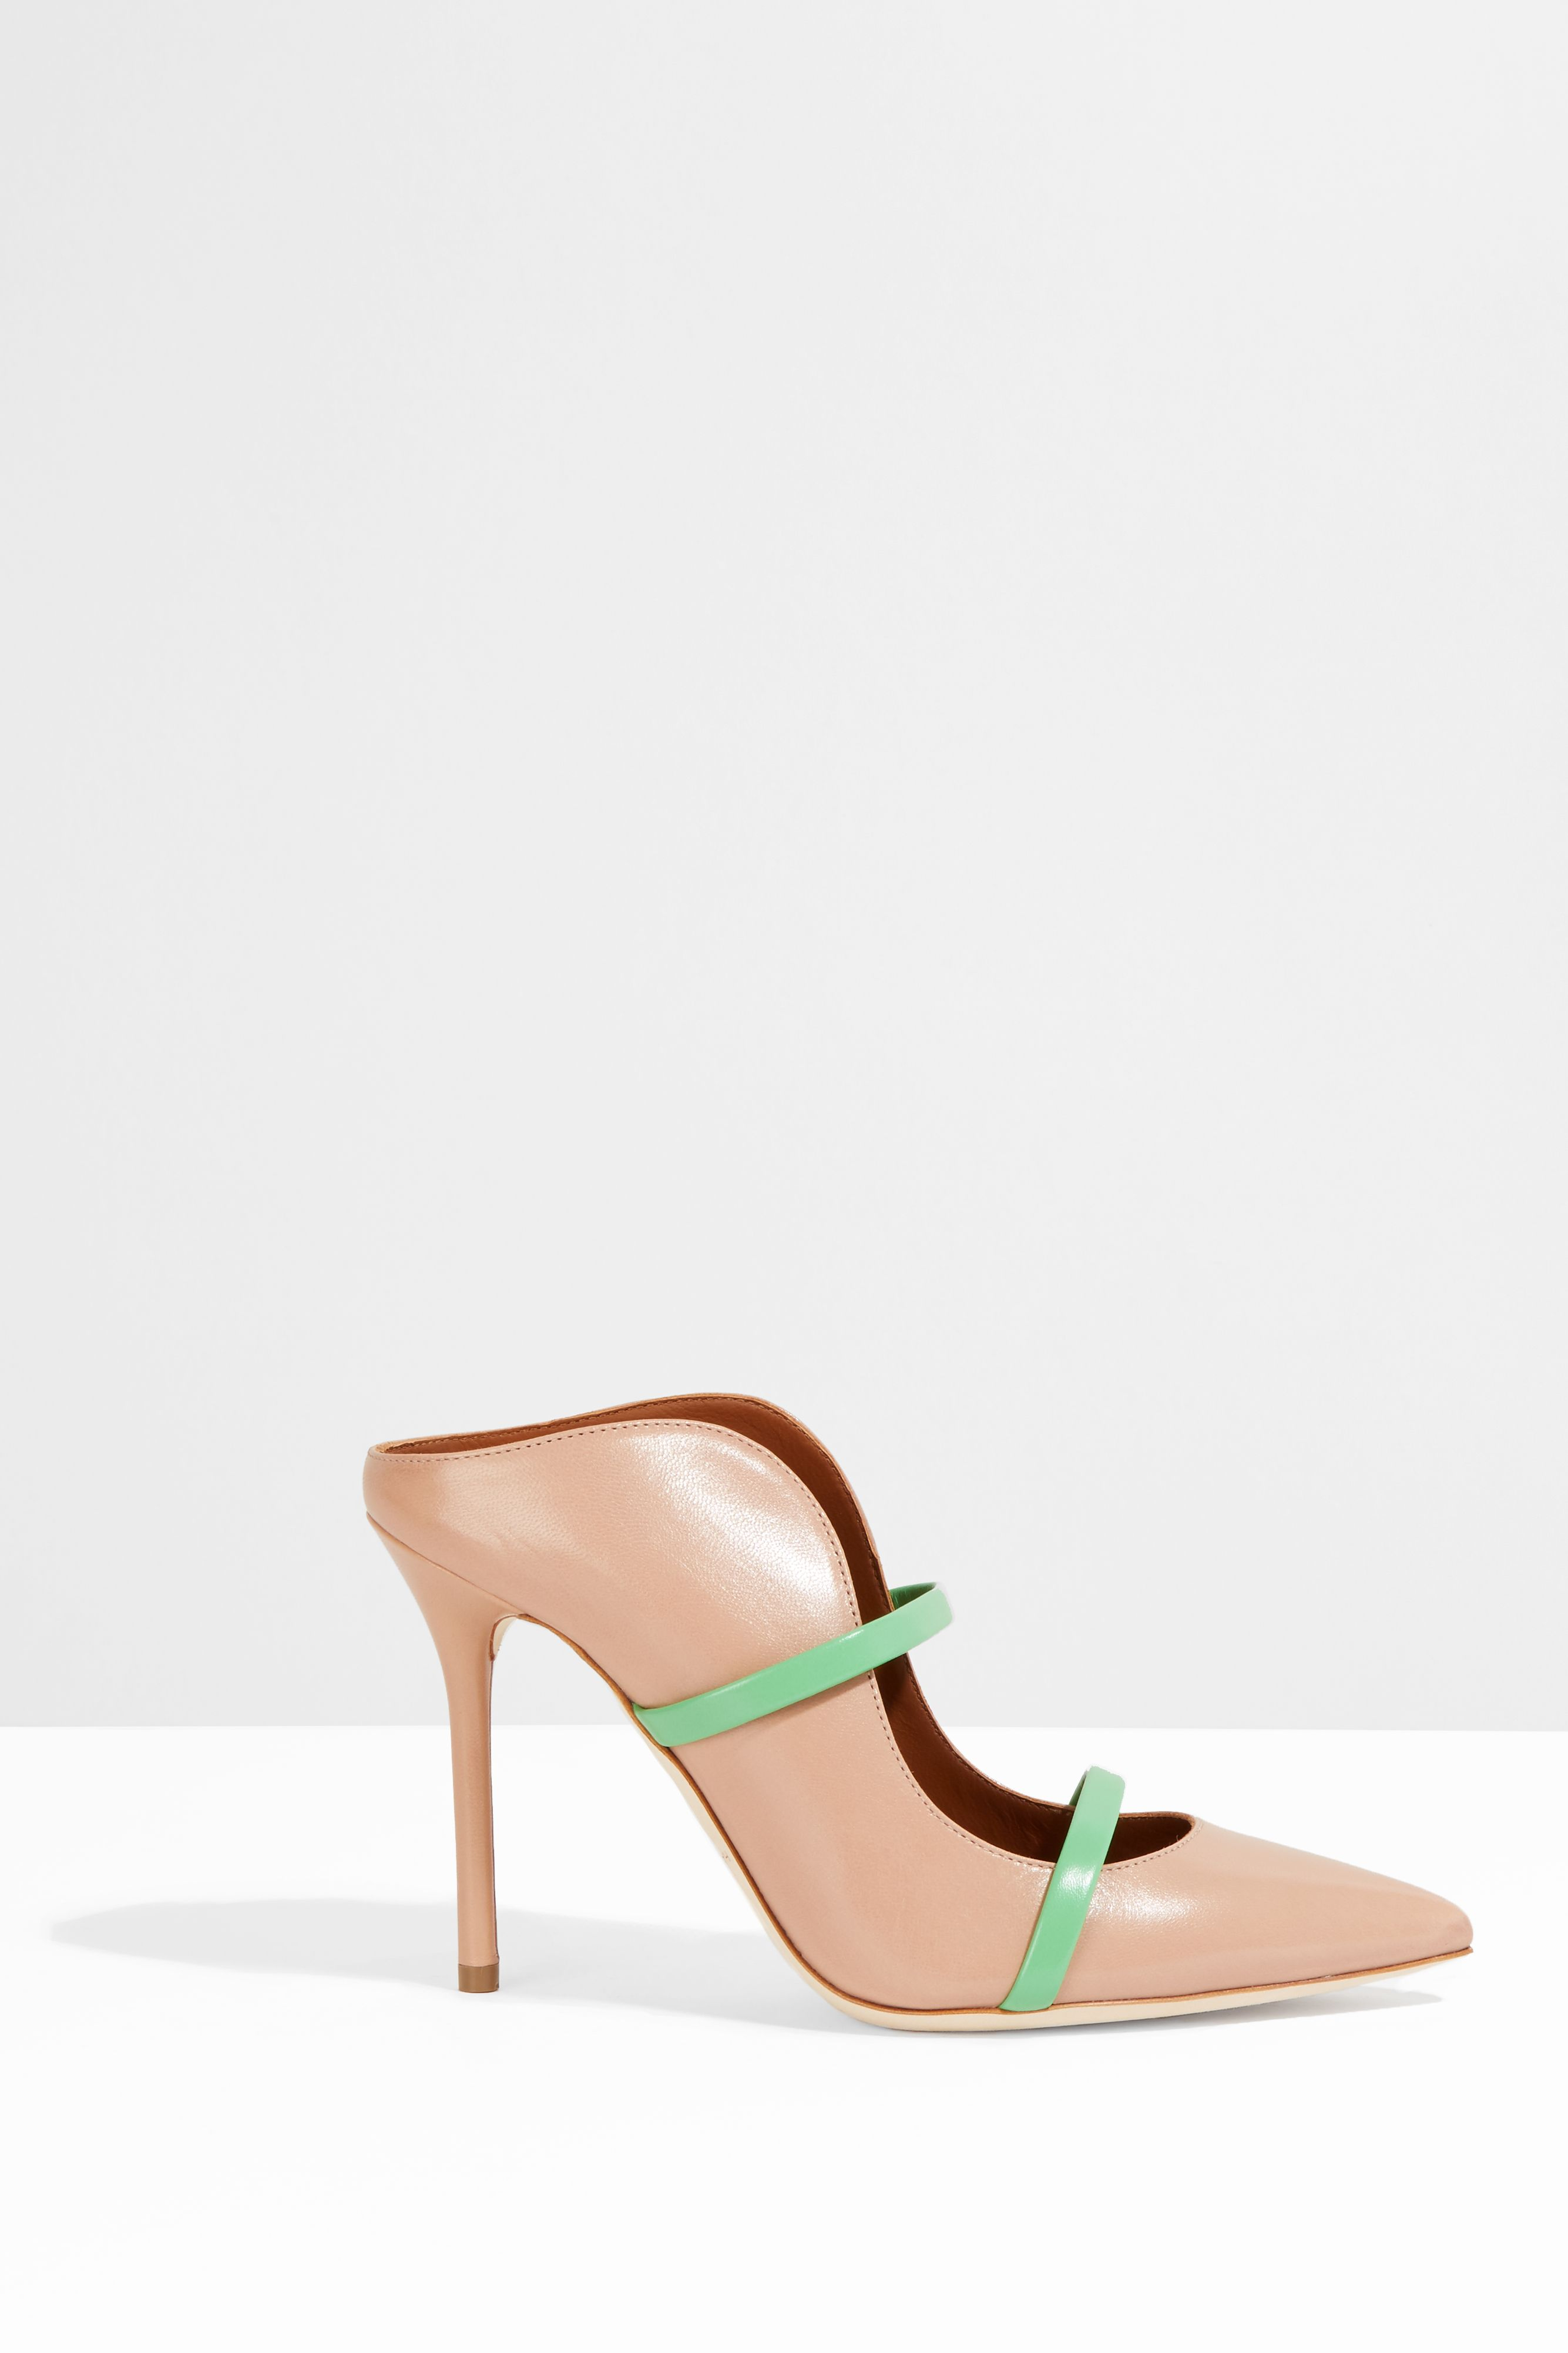 Malone souliers 'maureen' mules black nude women shoes Malone Souliers net worthfree delivery